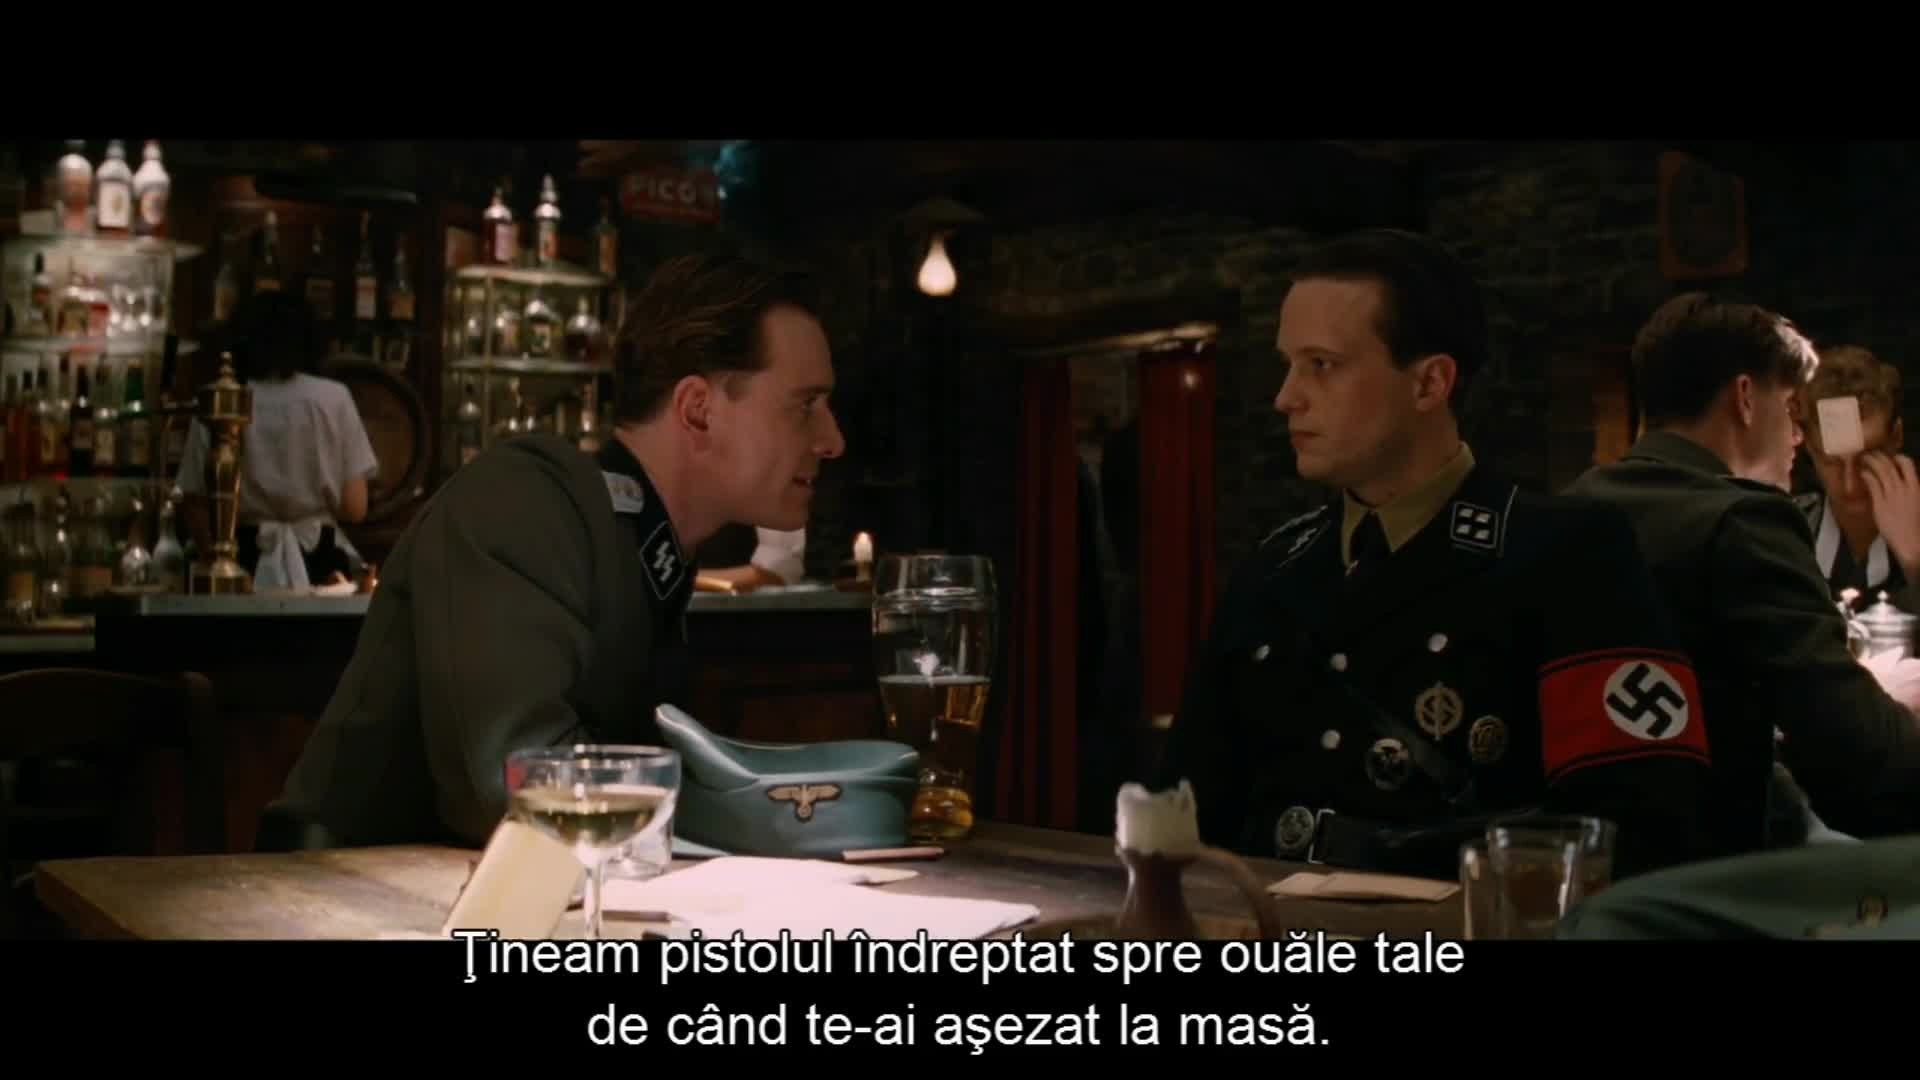 alexandru mortimer, bar shootout, bar shootout inglourious, best scene inglourious, film & animation, if this is it old boy, inglourious basterds best, inglourious basterds pub scene, pub scene inglourious basterds, the bar scene inglourious, gun time GIFs